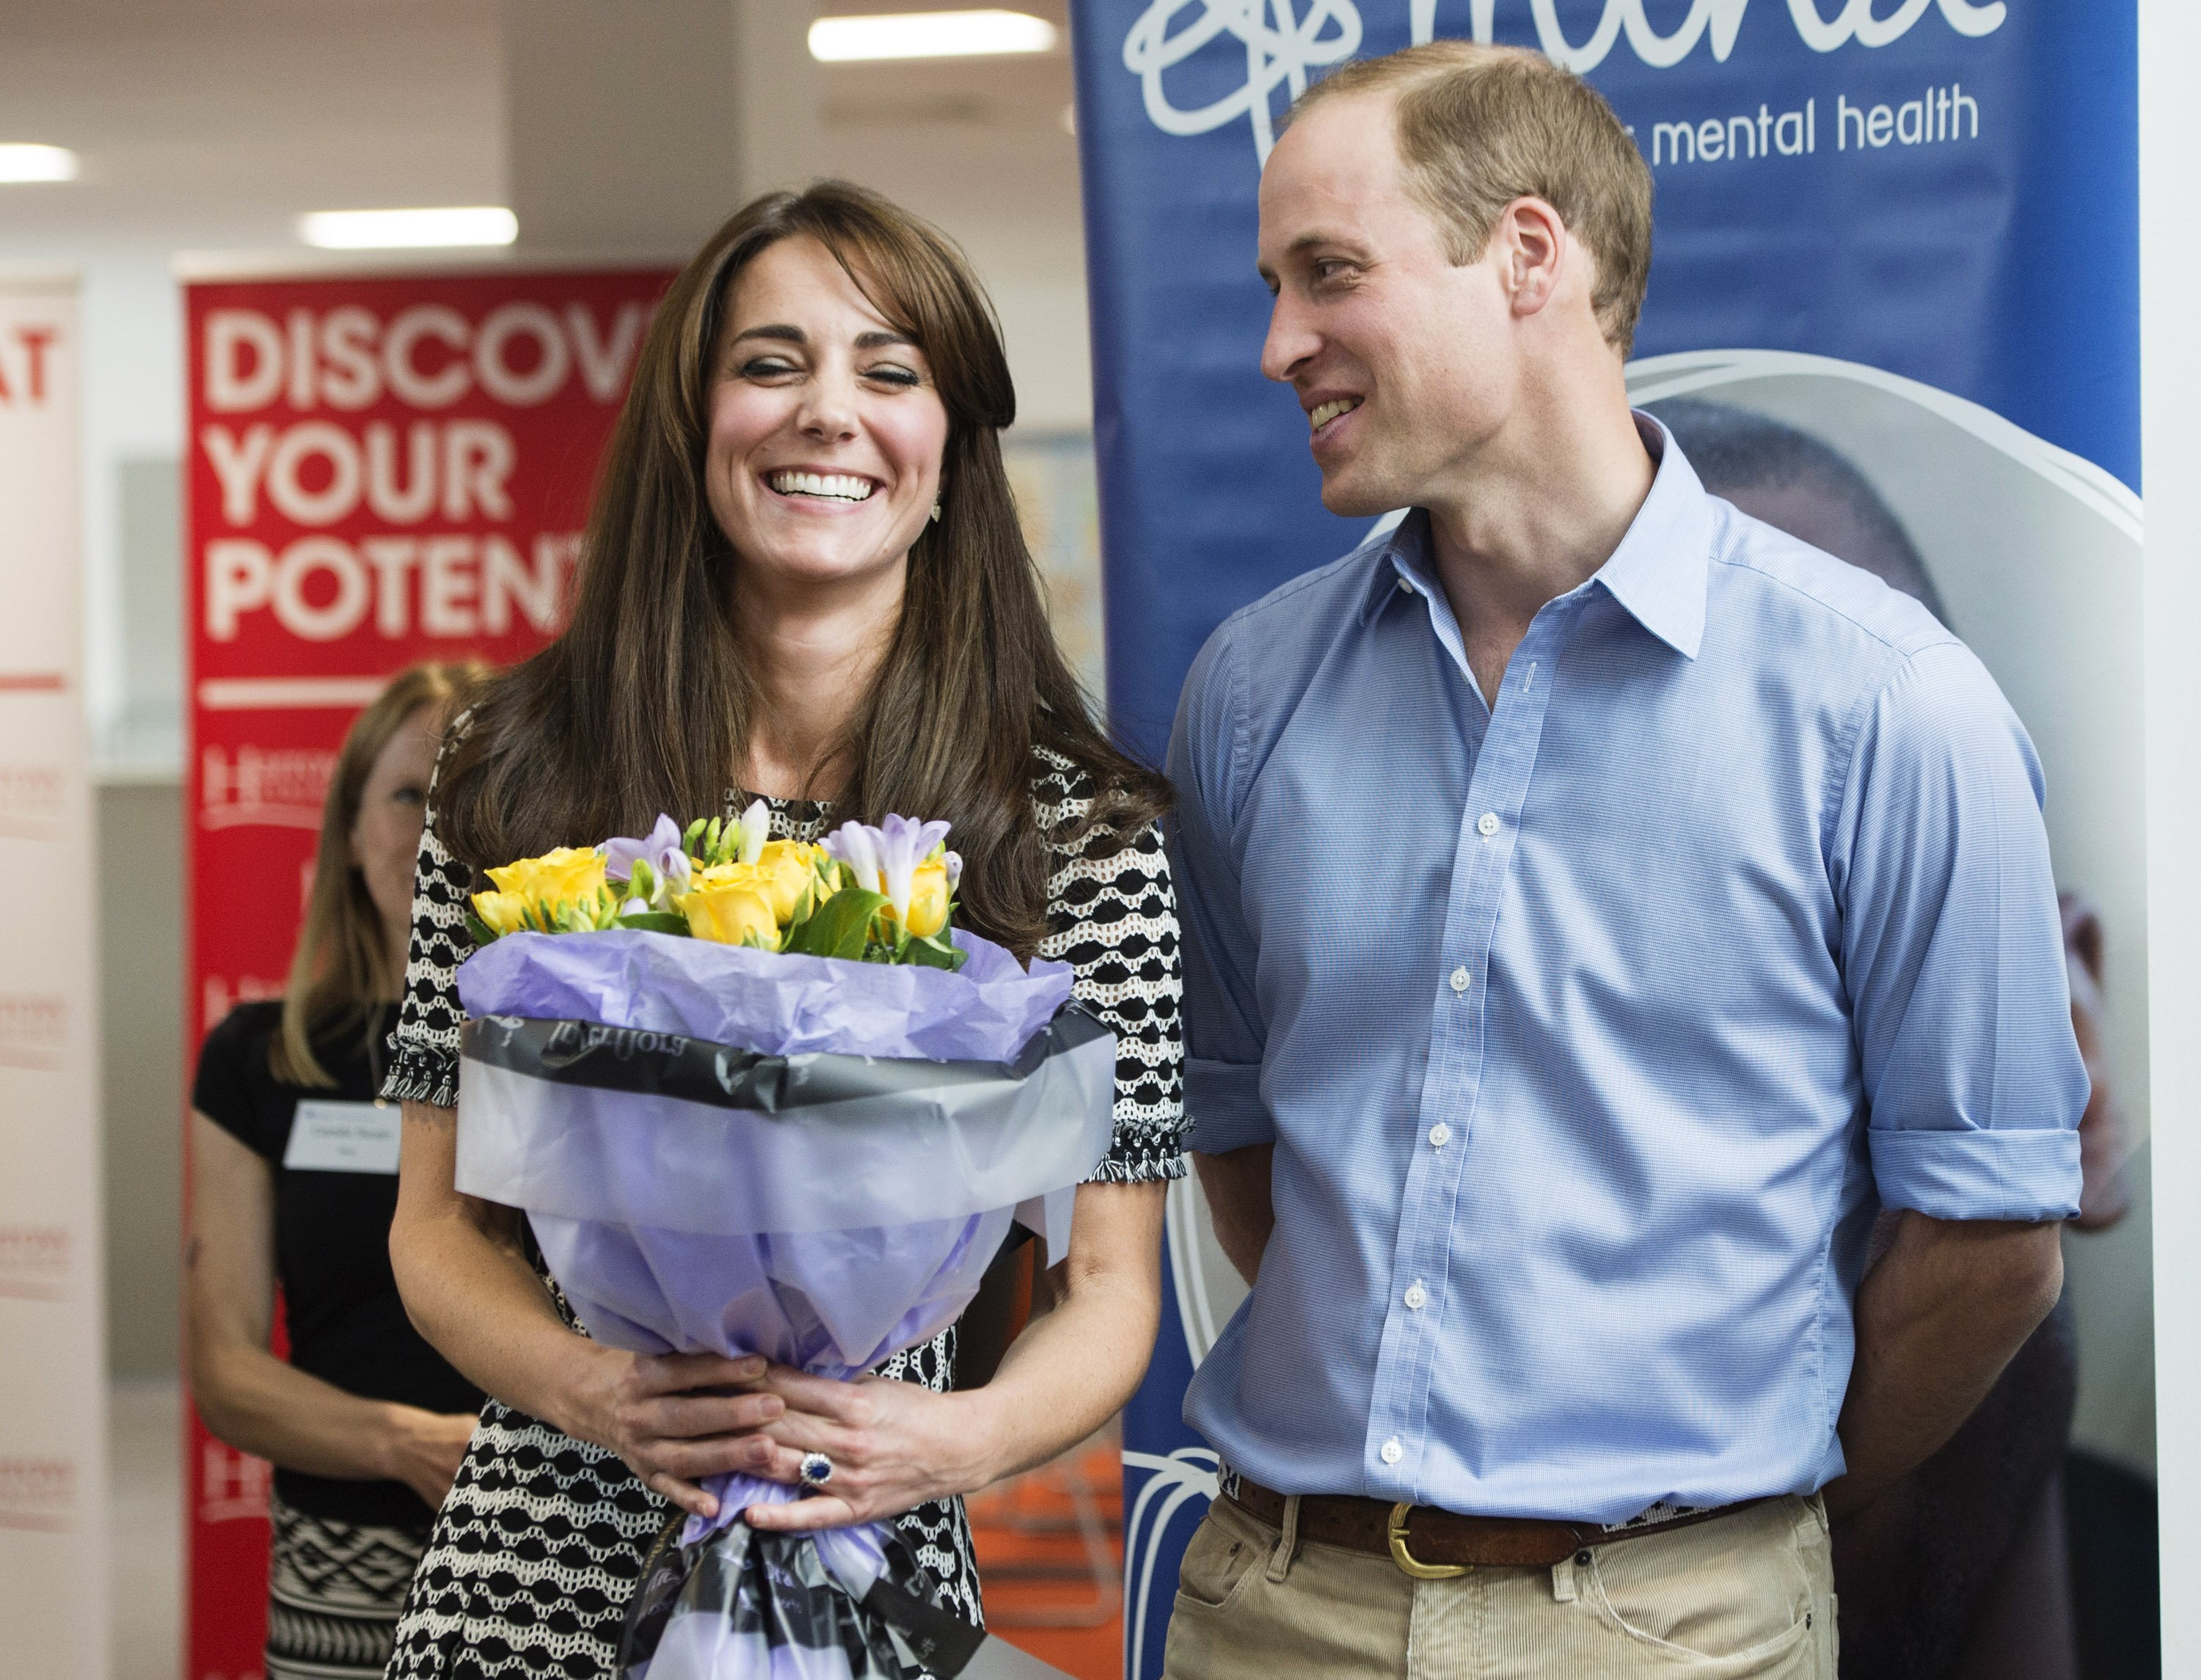 Prinz William und Catherine am Harrow College am 10. Oktober 2015 in Harrow, England. | Quelle: Getty Images